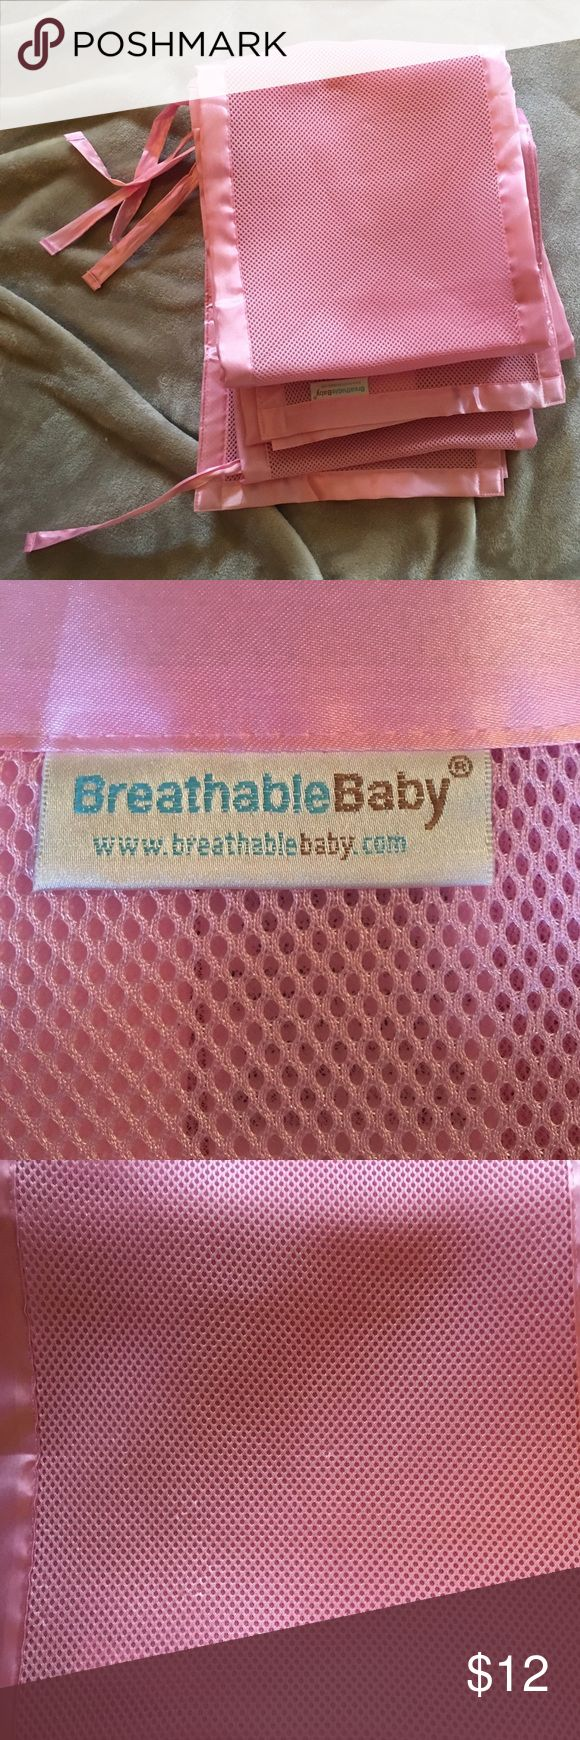 Breatheable Baby mesh crib bumper Barely used crib bumper.. Slight wear as shown in last 2 photos.. Any questions please ask 🎀 Breathable Baby Other